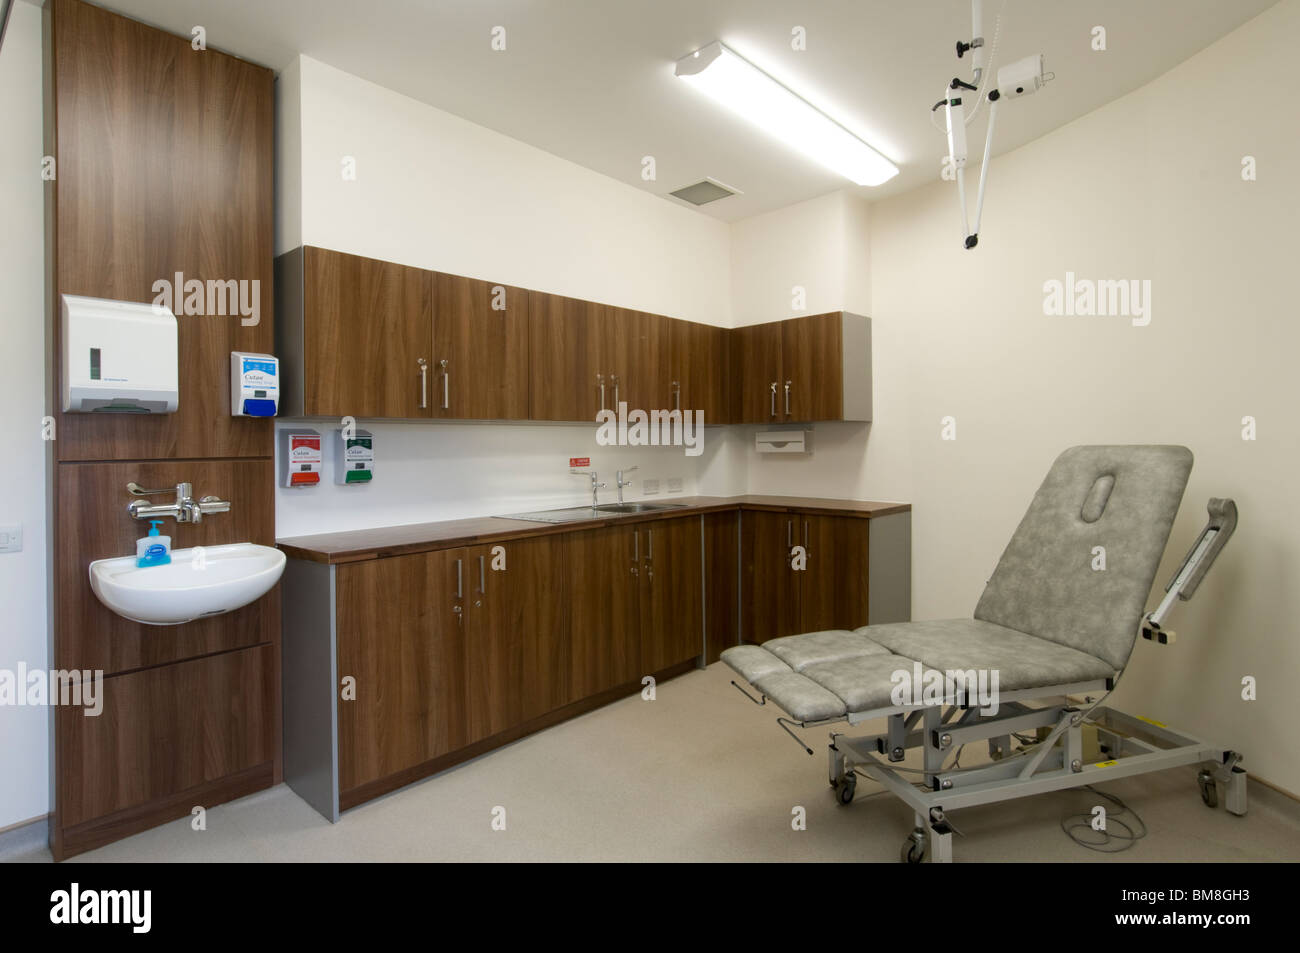 Doctors consulting room. - Stock Image